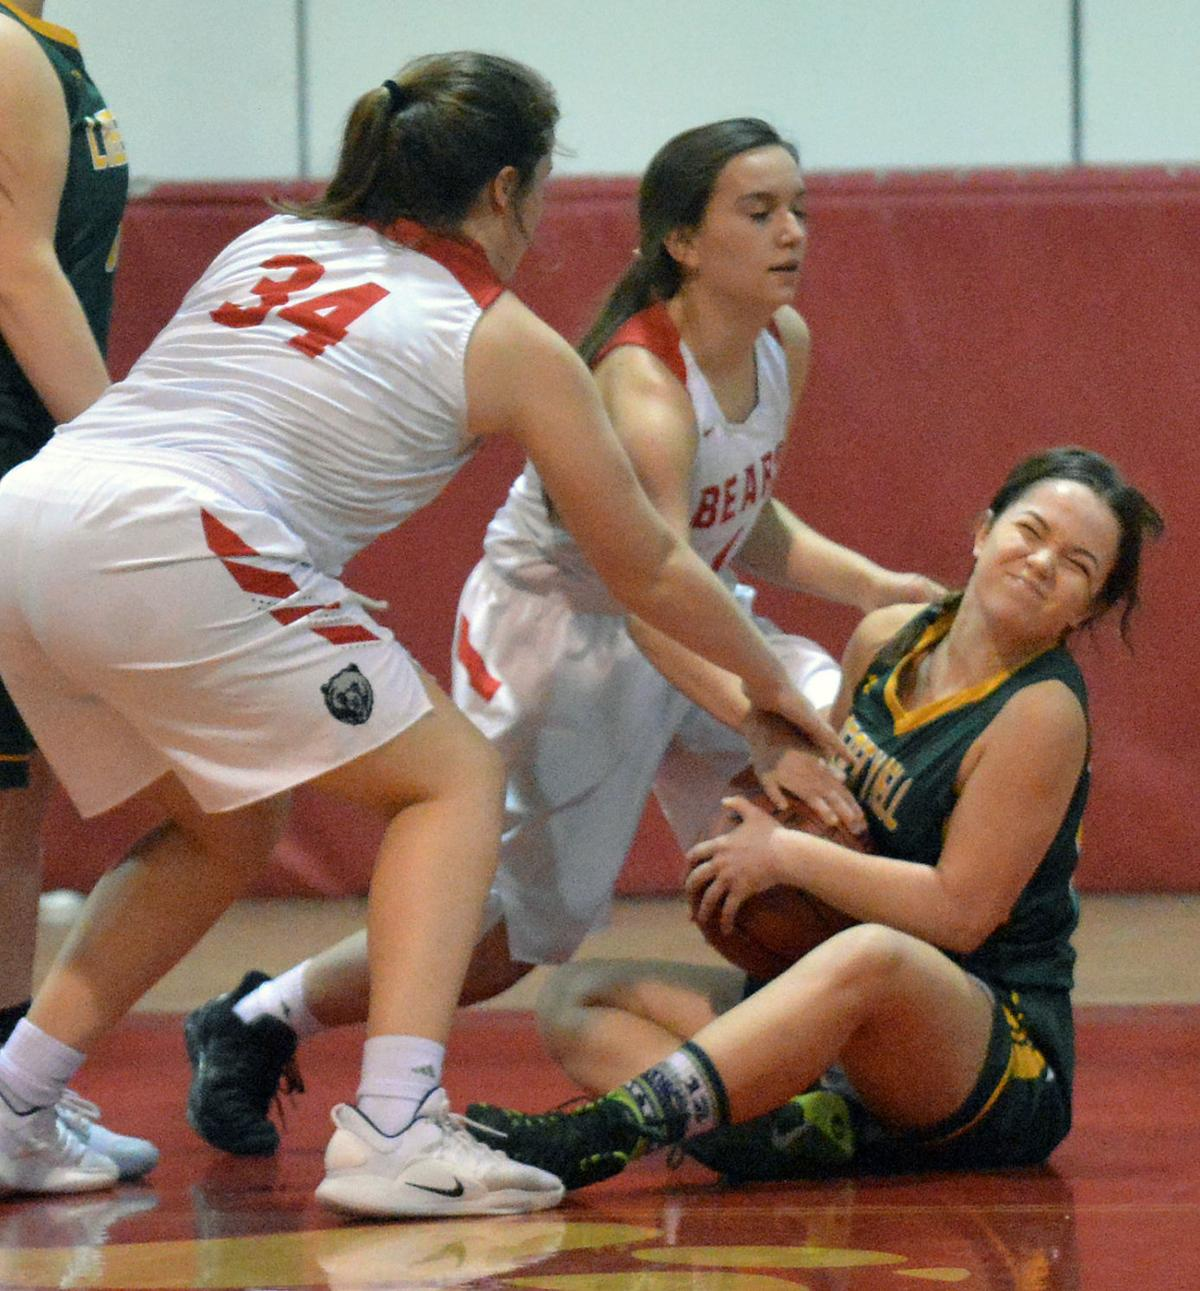 Girls' basketball: Liberty girls shock Brewster